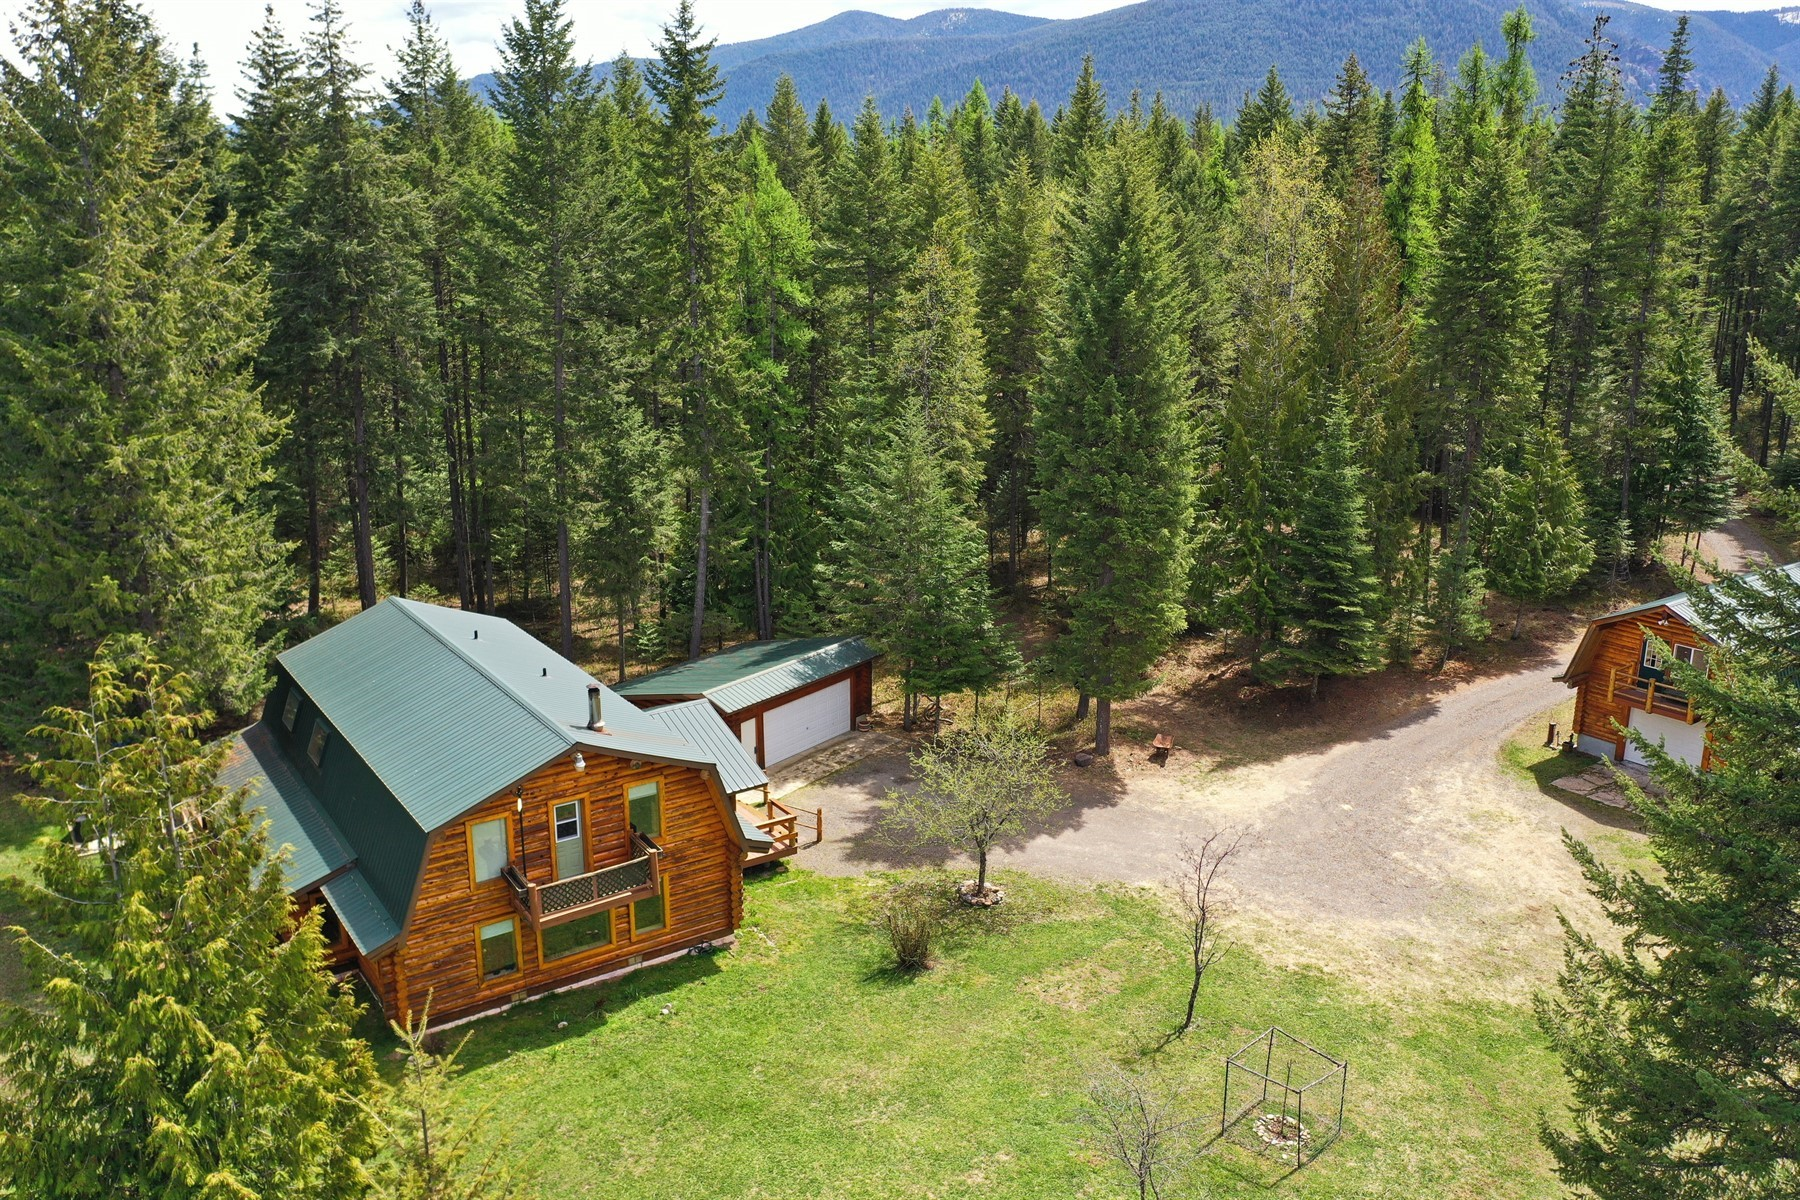 Single Family Homes for Active at Log Home with Guest House on 10+ Acres 83 West Cabinet Wagon Road Clark Fork, Idaho 83811 United States